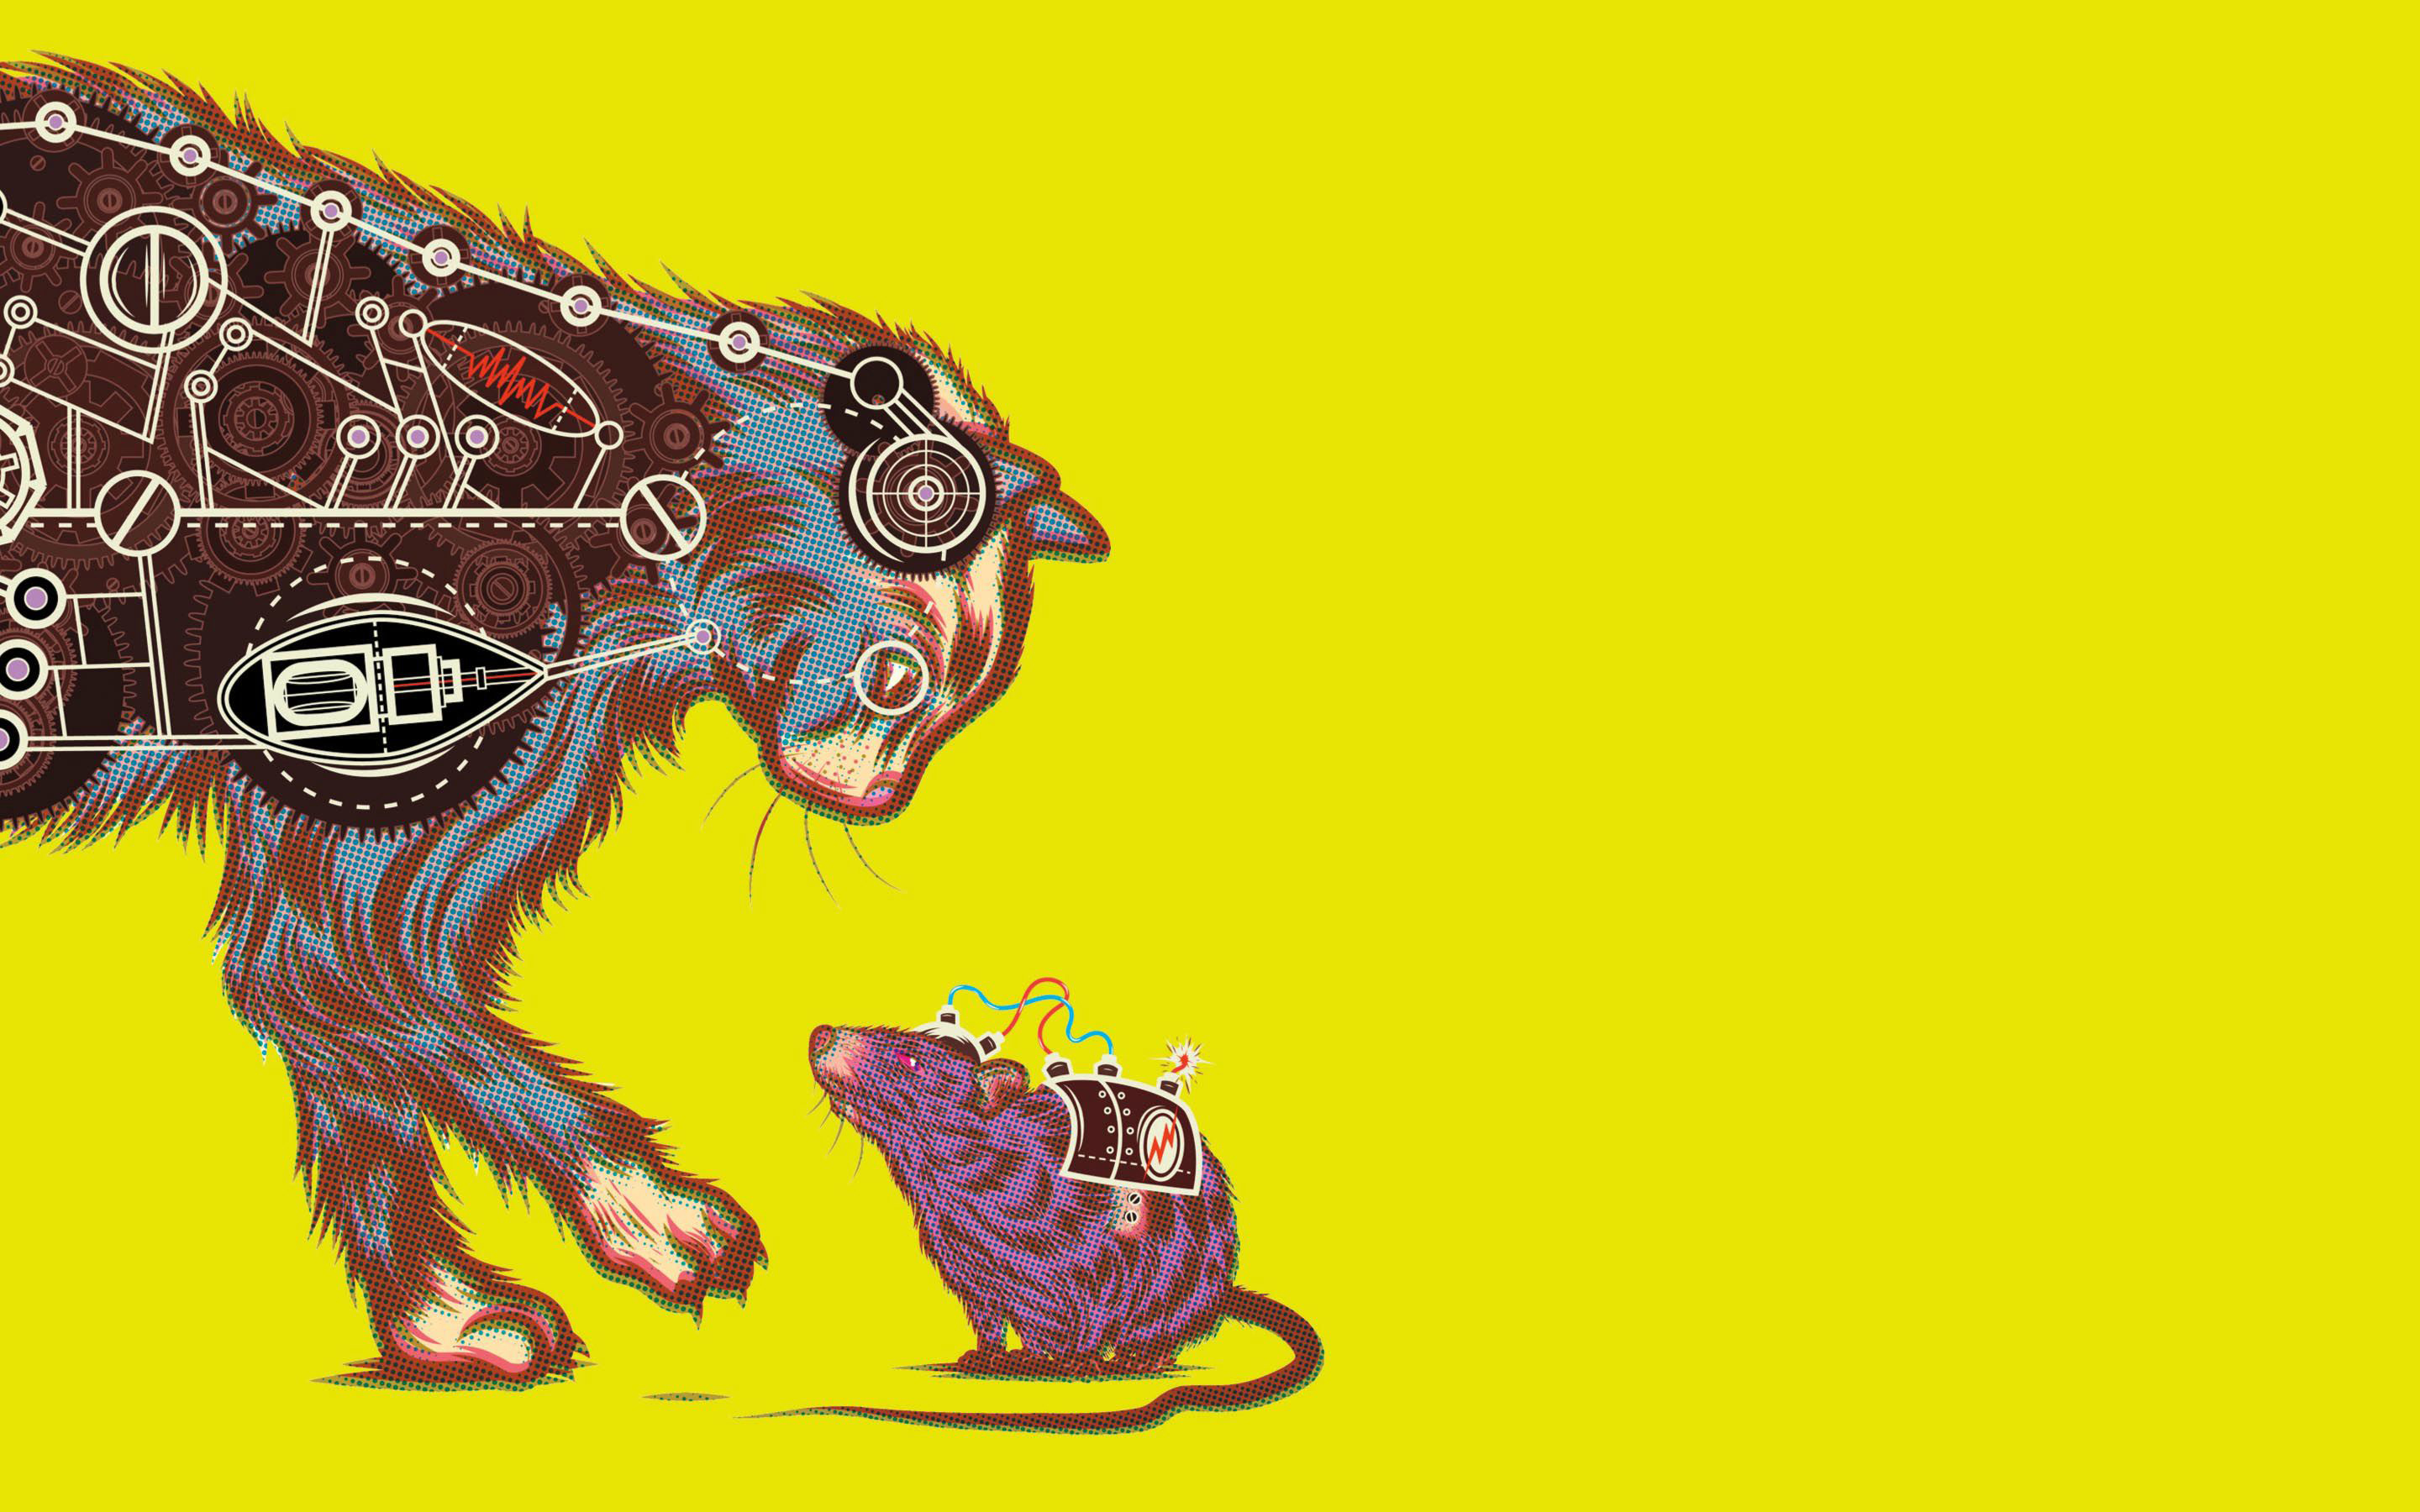 Sci Fi Humor Cats Mice Mouse Cartoon Schematic Wallpaper